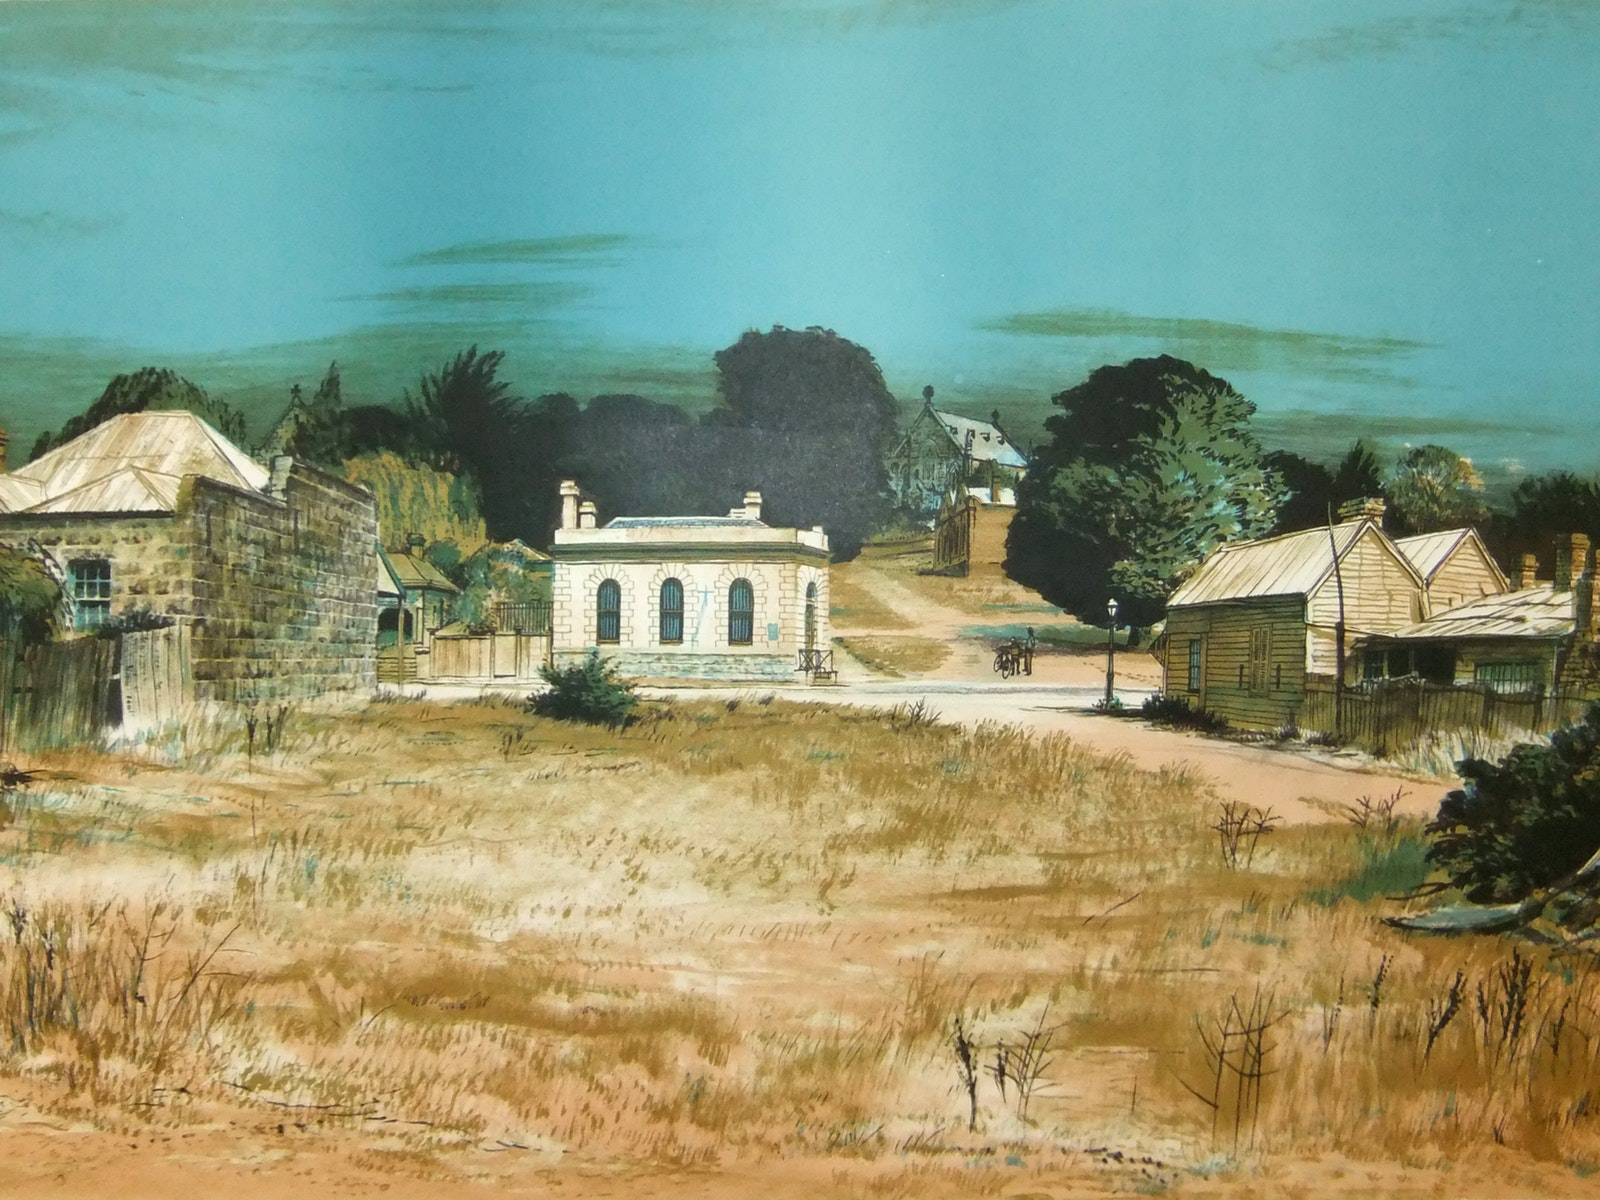 Kenneth Jack 'Clunes VIC' 1971 Lithograph 43*69 cm